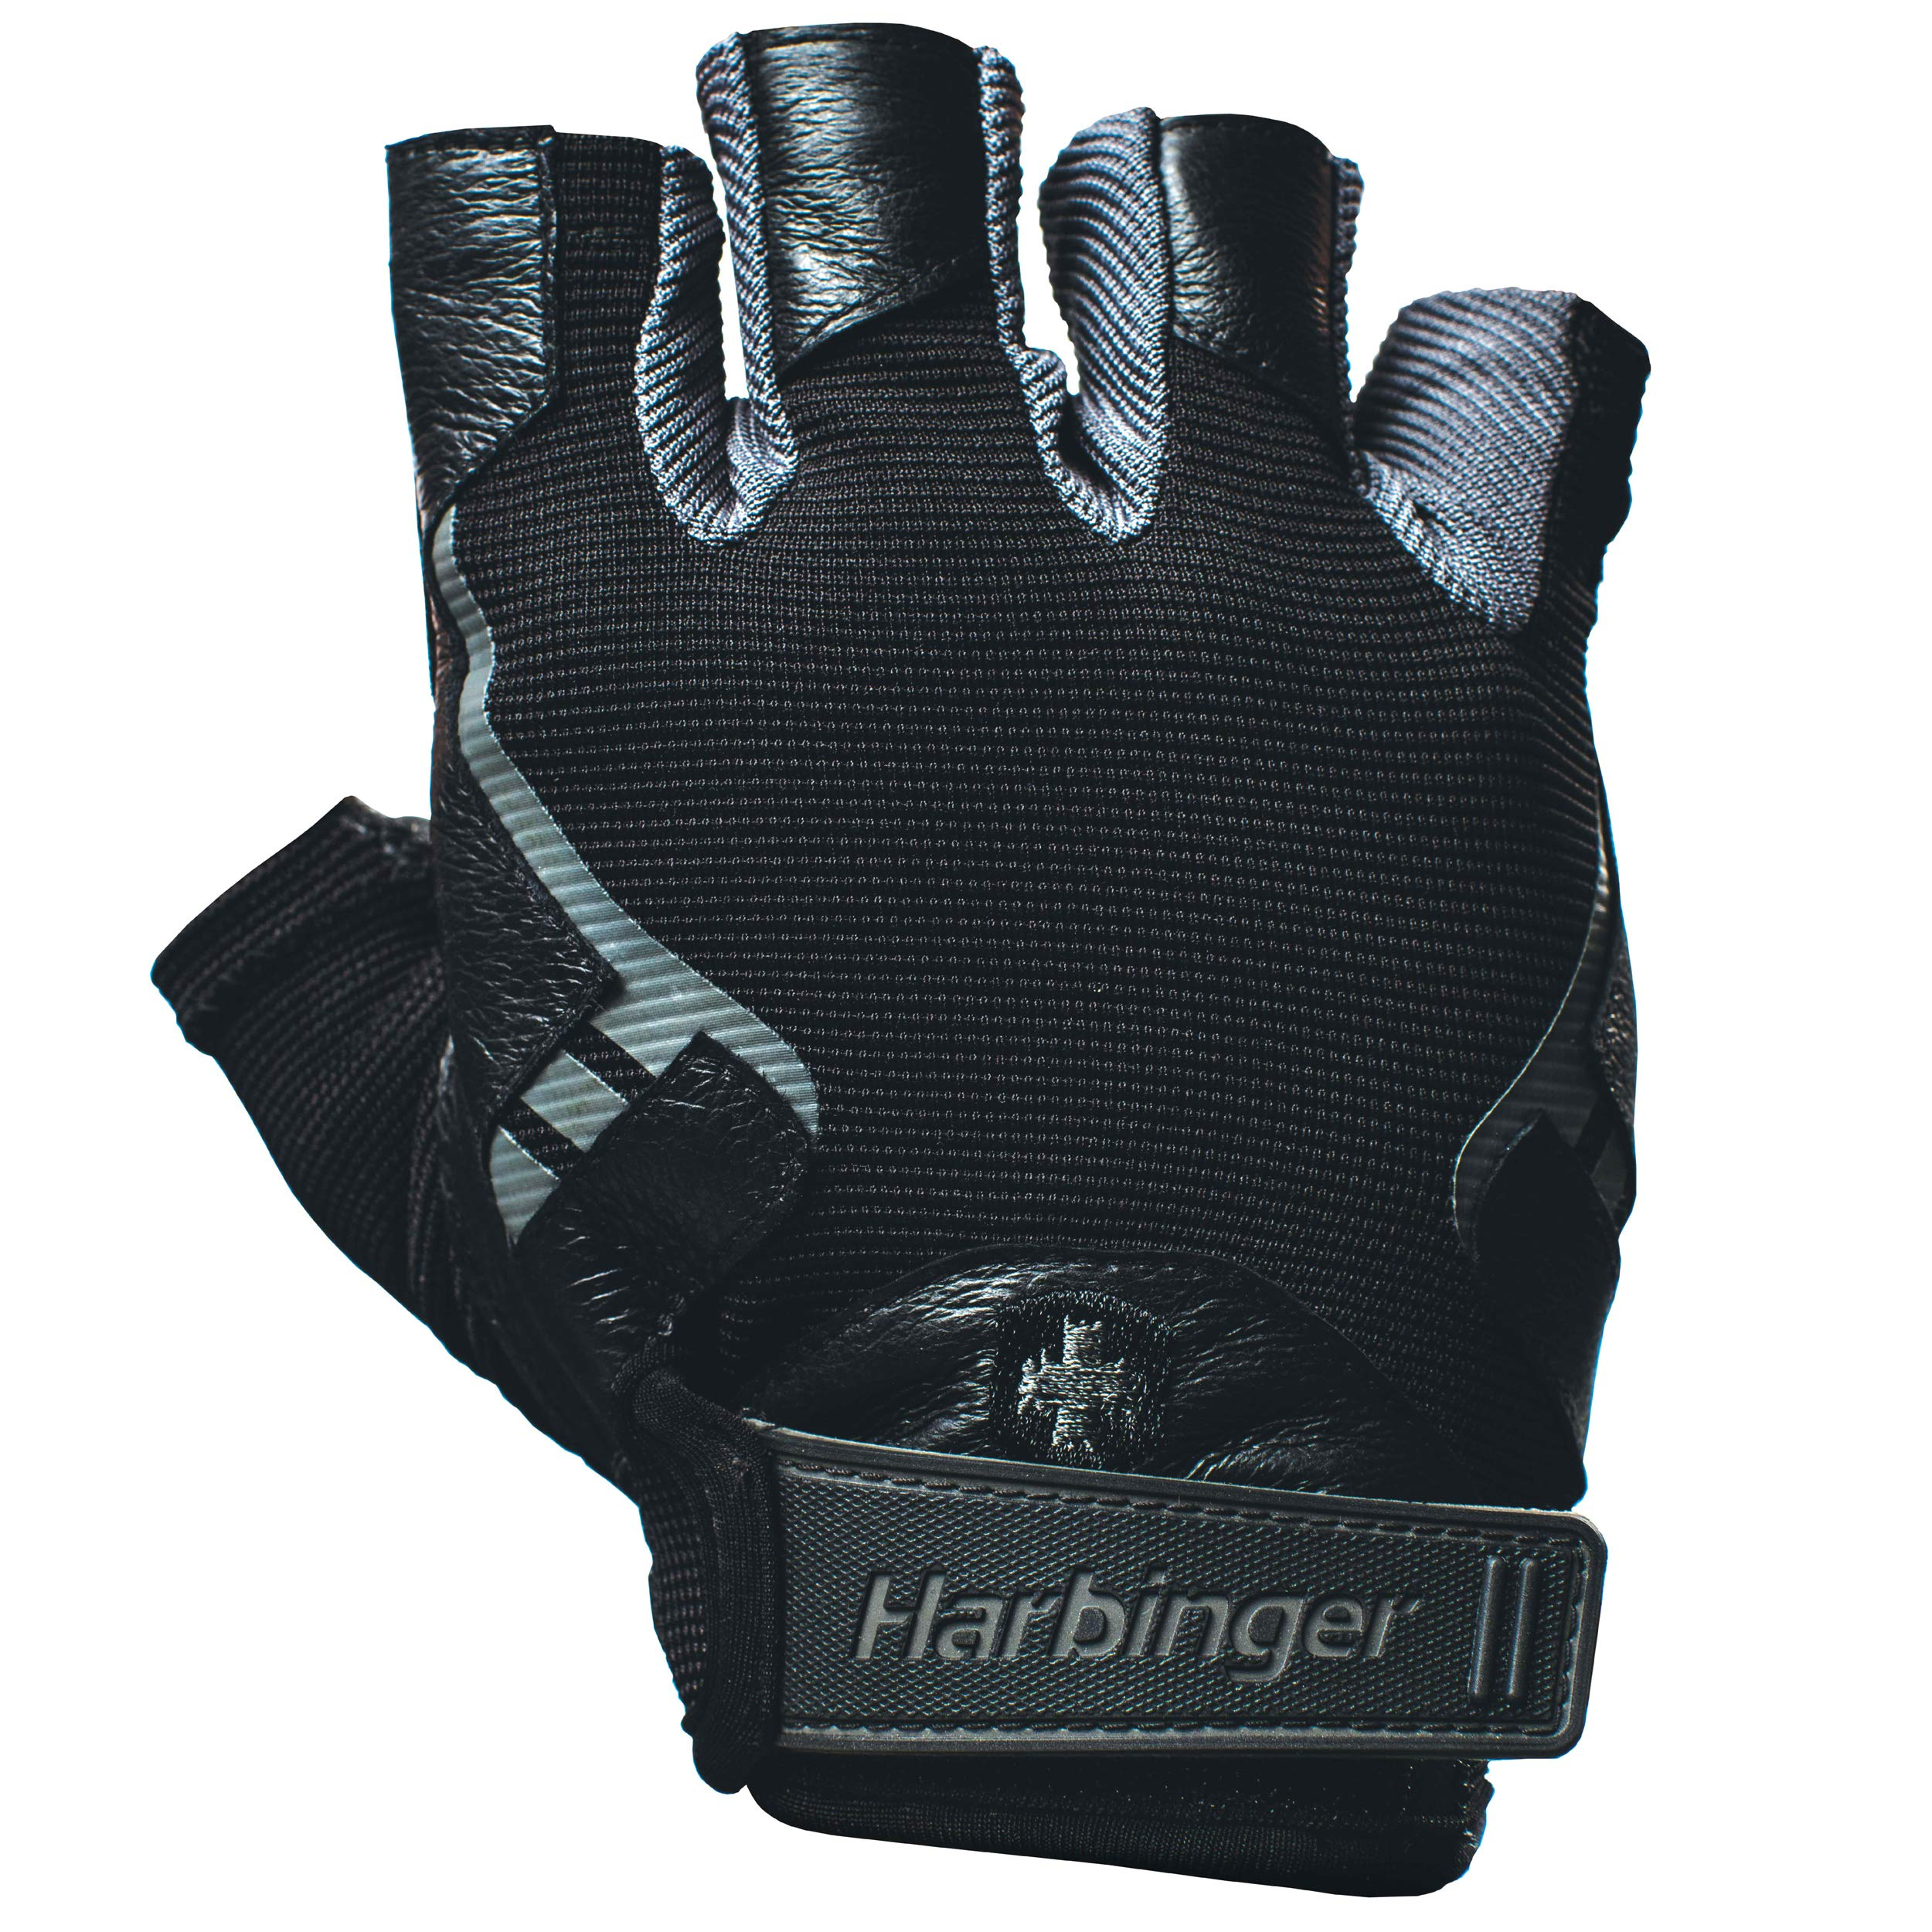 Harbinger Pro Non-WristWrap Vented Cushioned Leather Palm Weightlifting Gloves, Pair